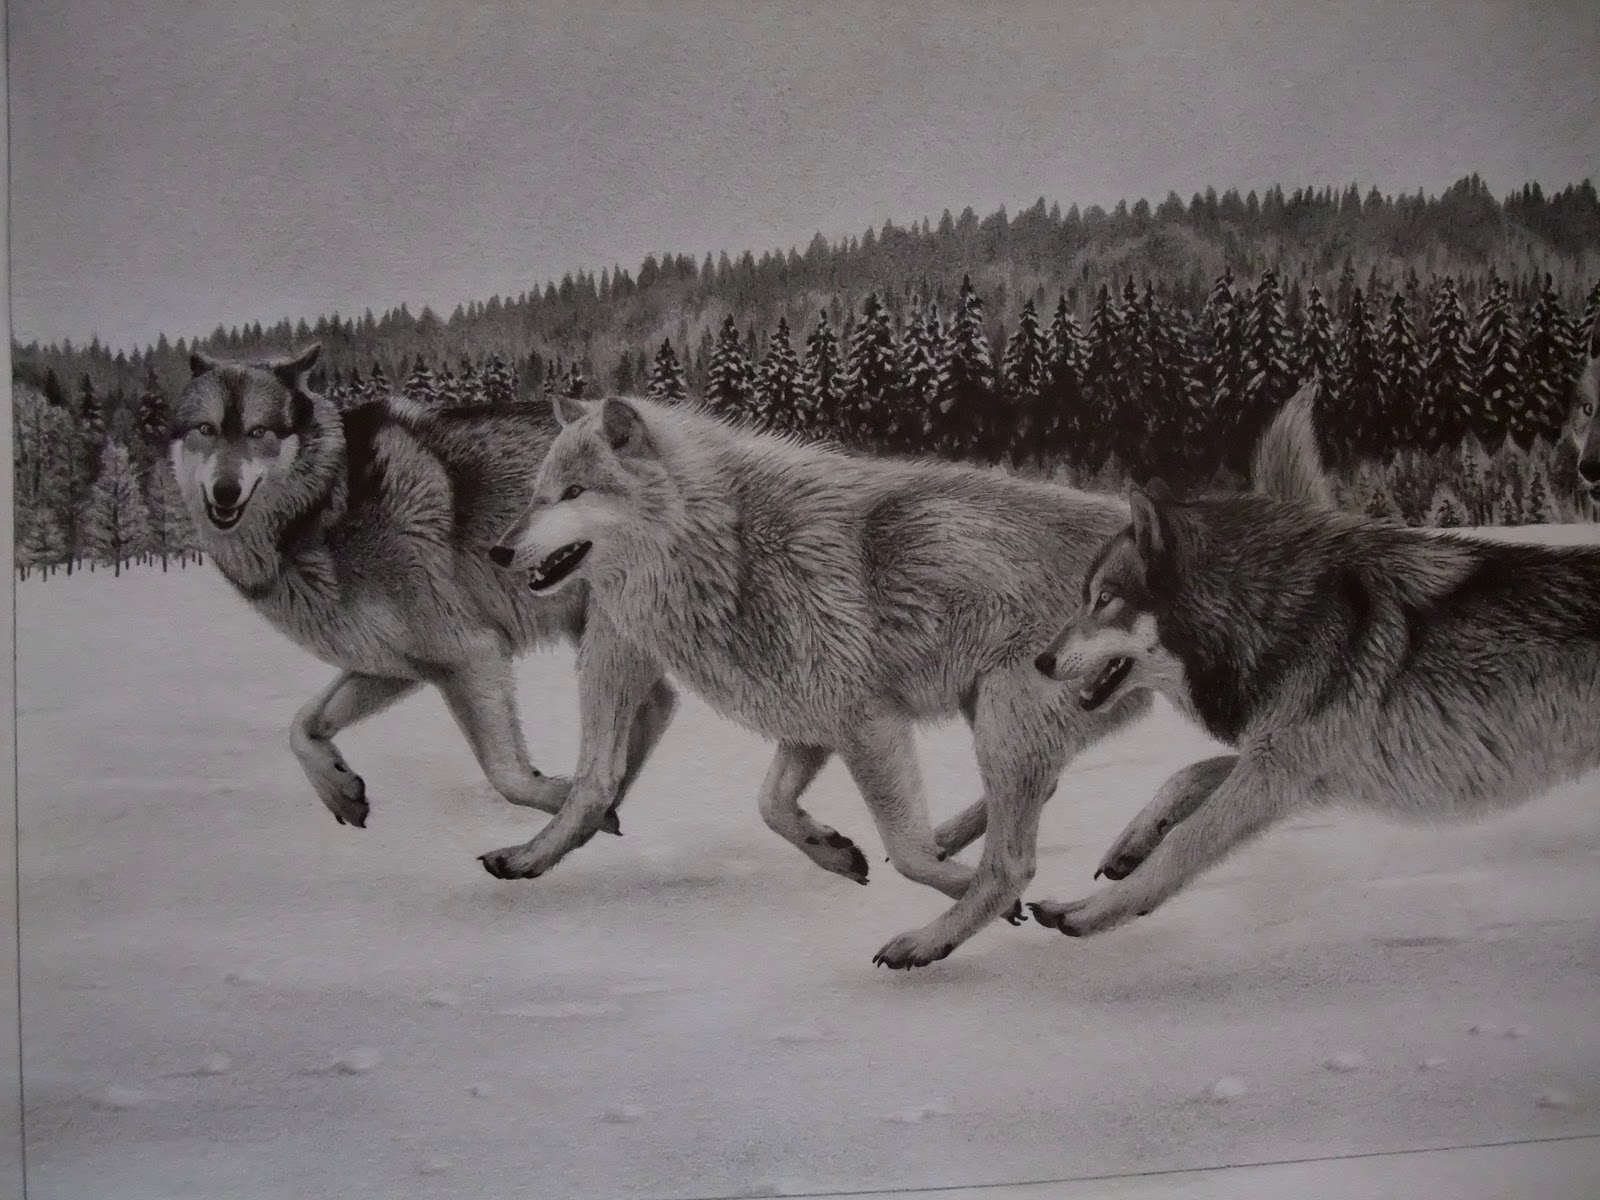 Antoine roquain dessin animalier wildlife pencil art f vrier 2011 - Dessin de loup simple ...